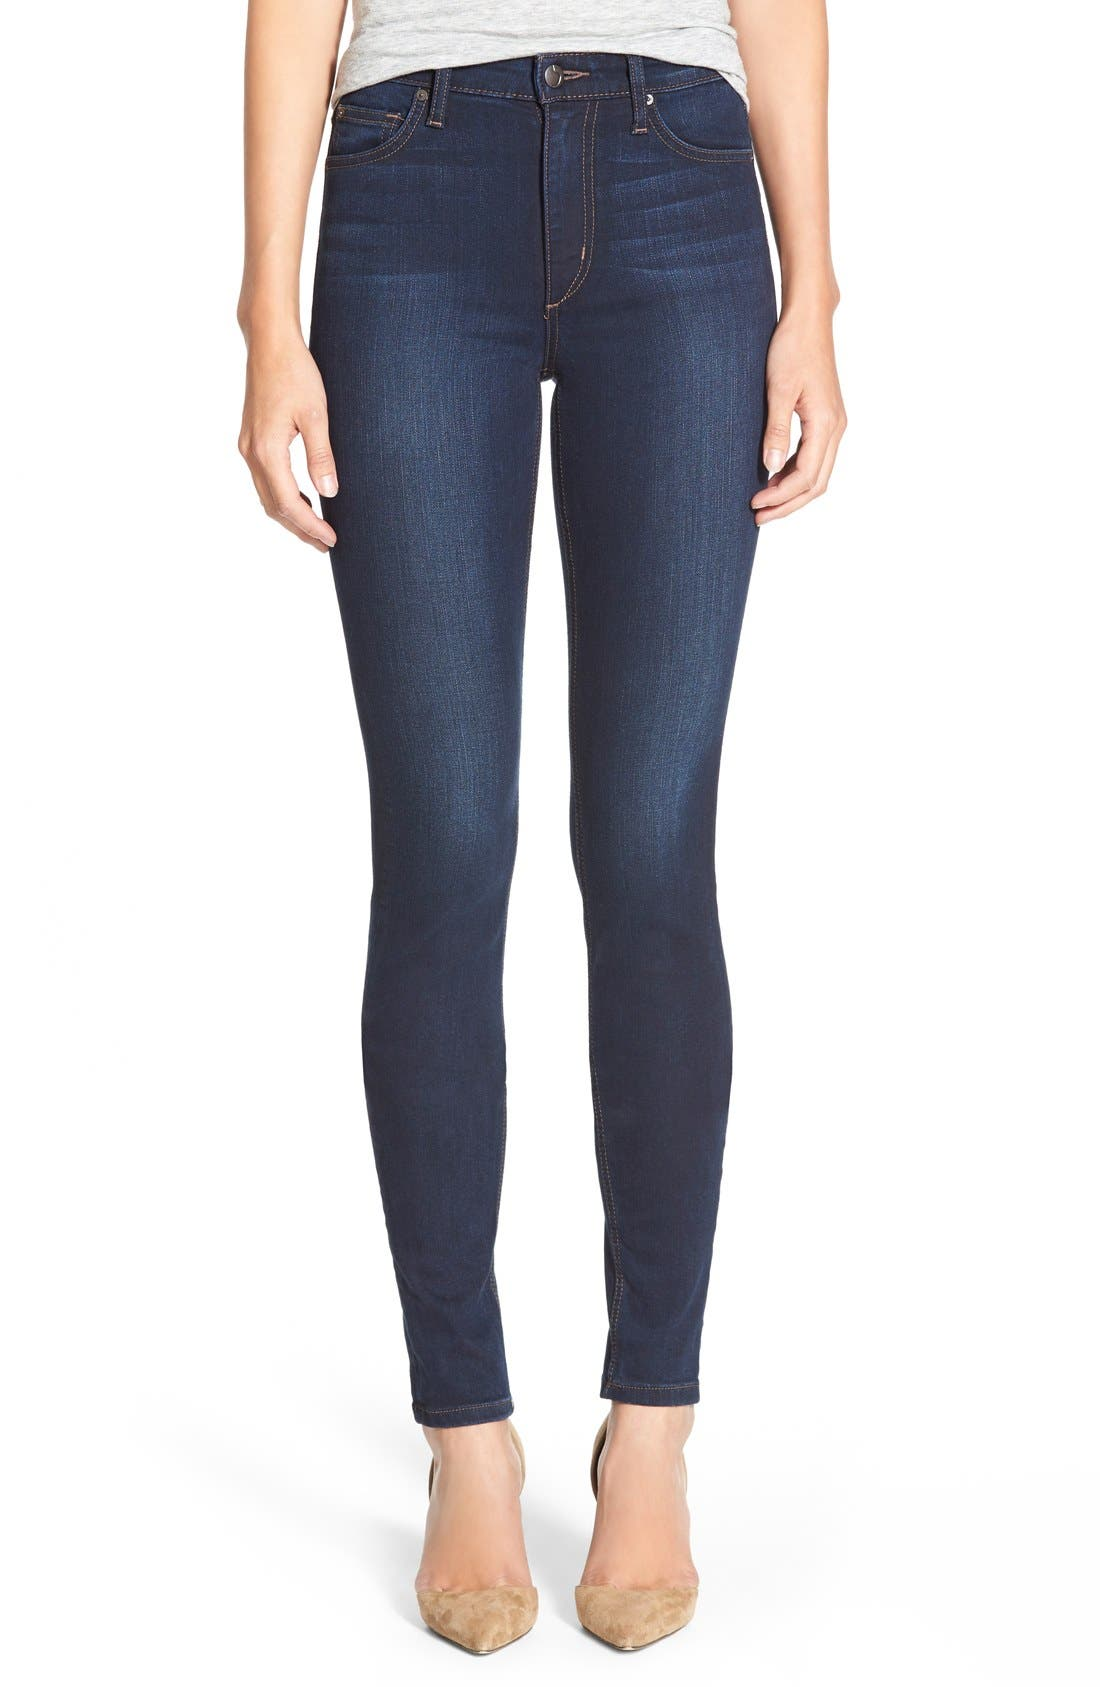 'Flawless -Charlie' High Rise Skinny Jeans,                         Main,                         color, Cecily